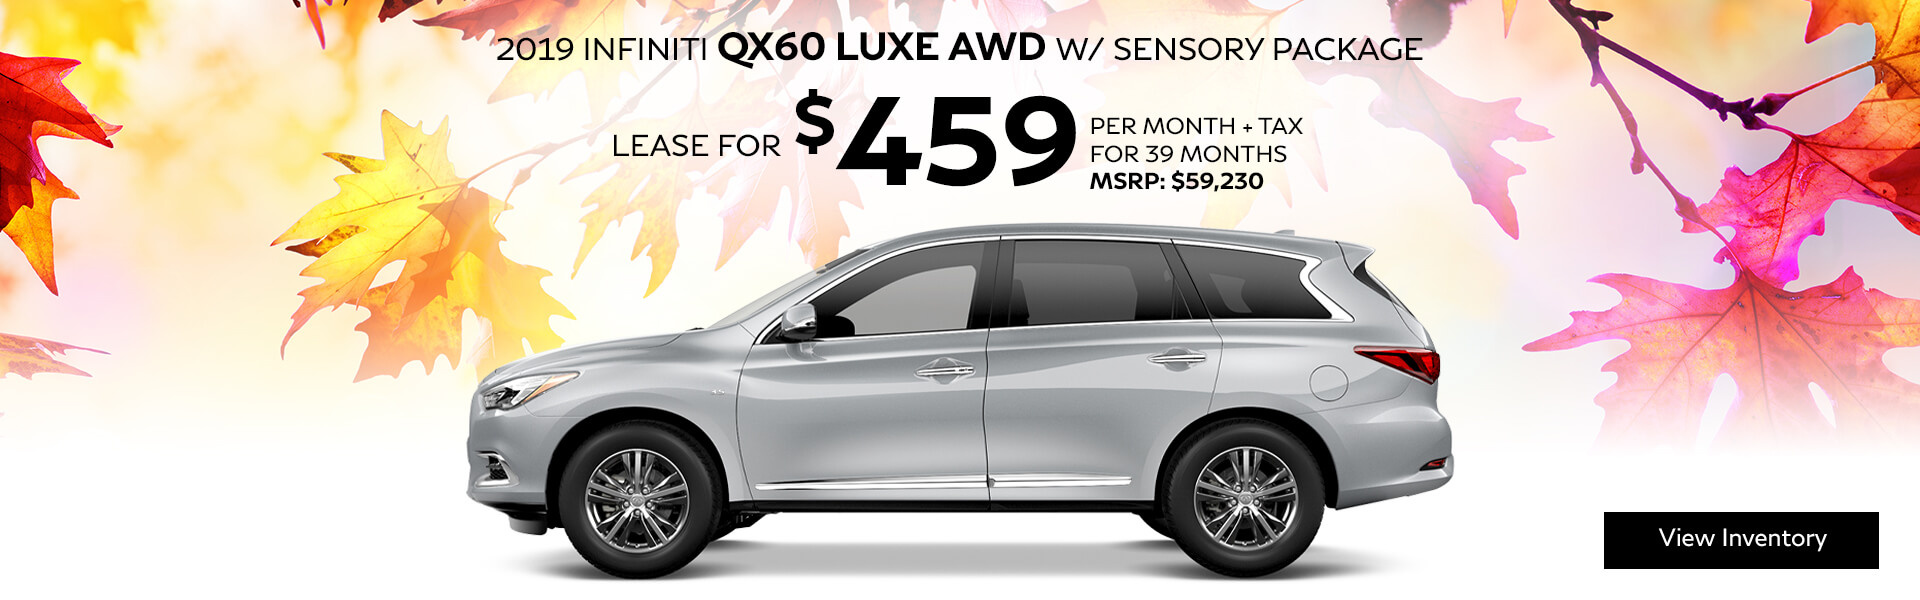 QX60 - Lease for $459